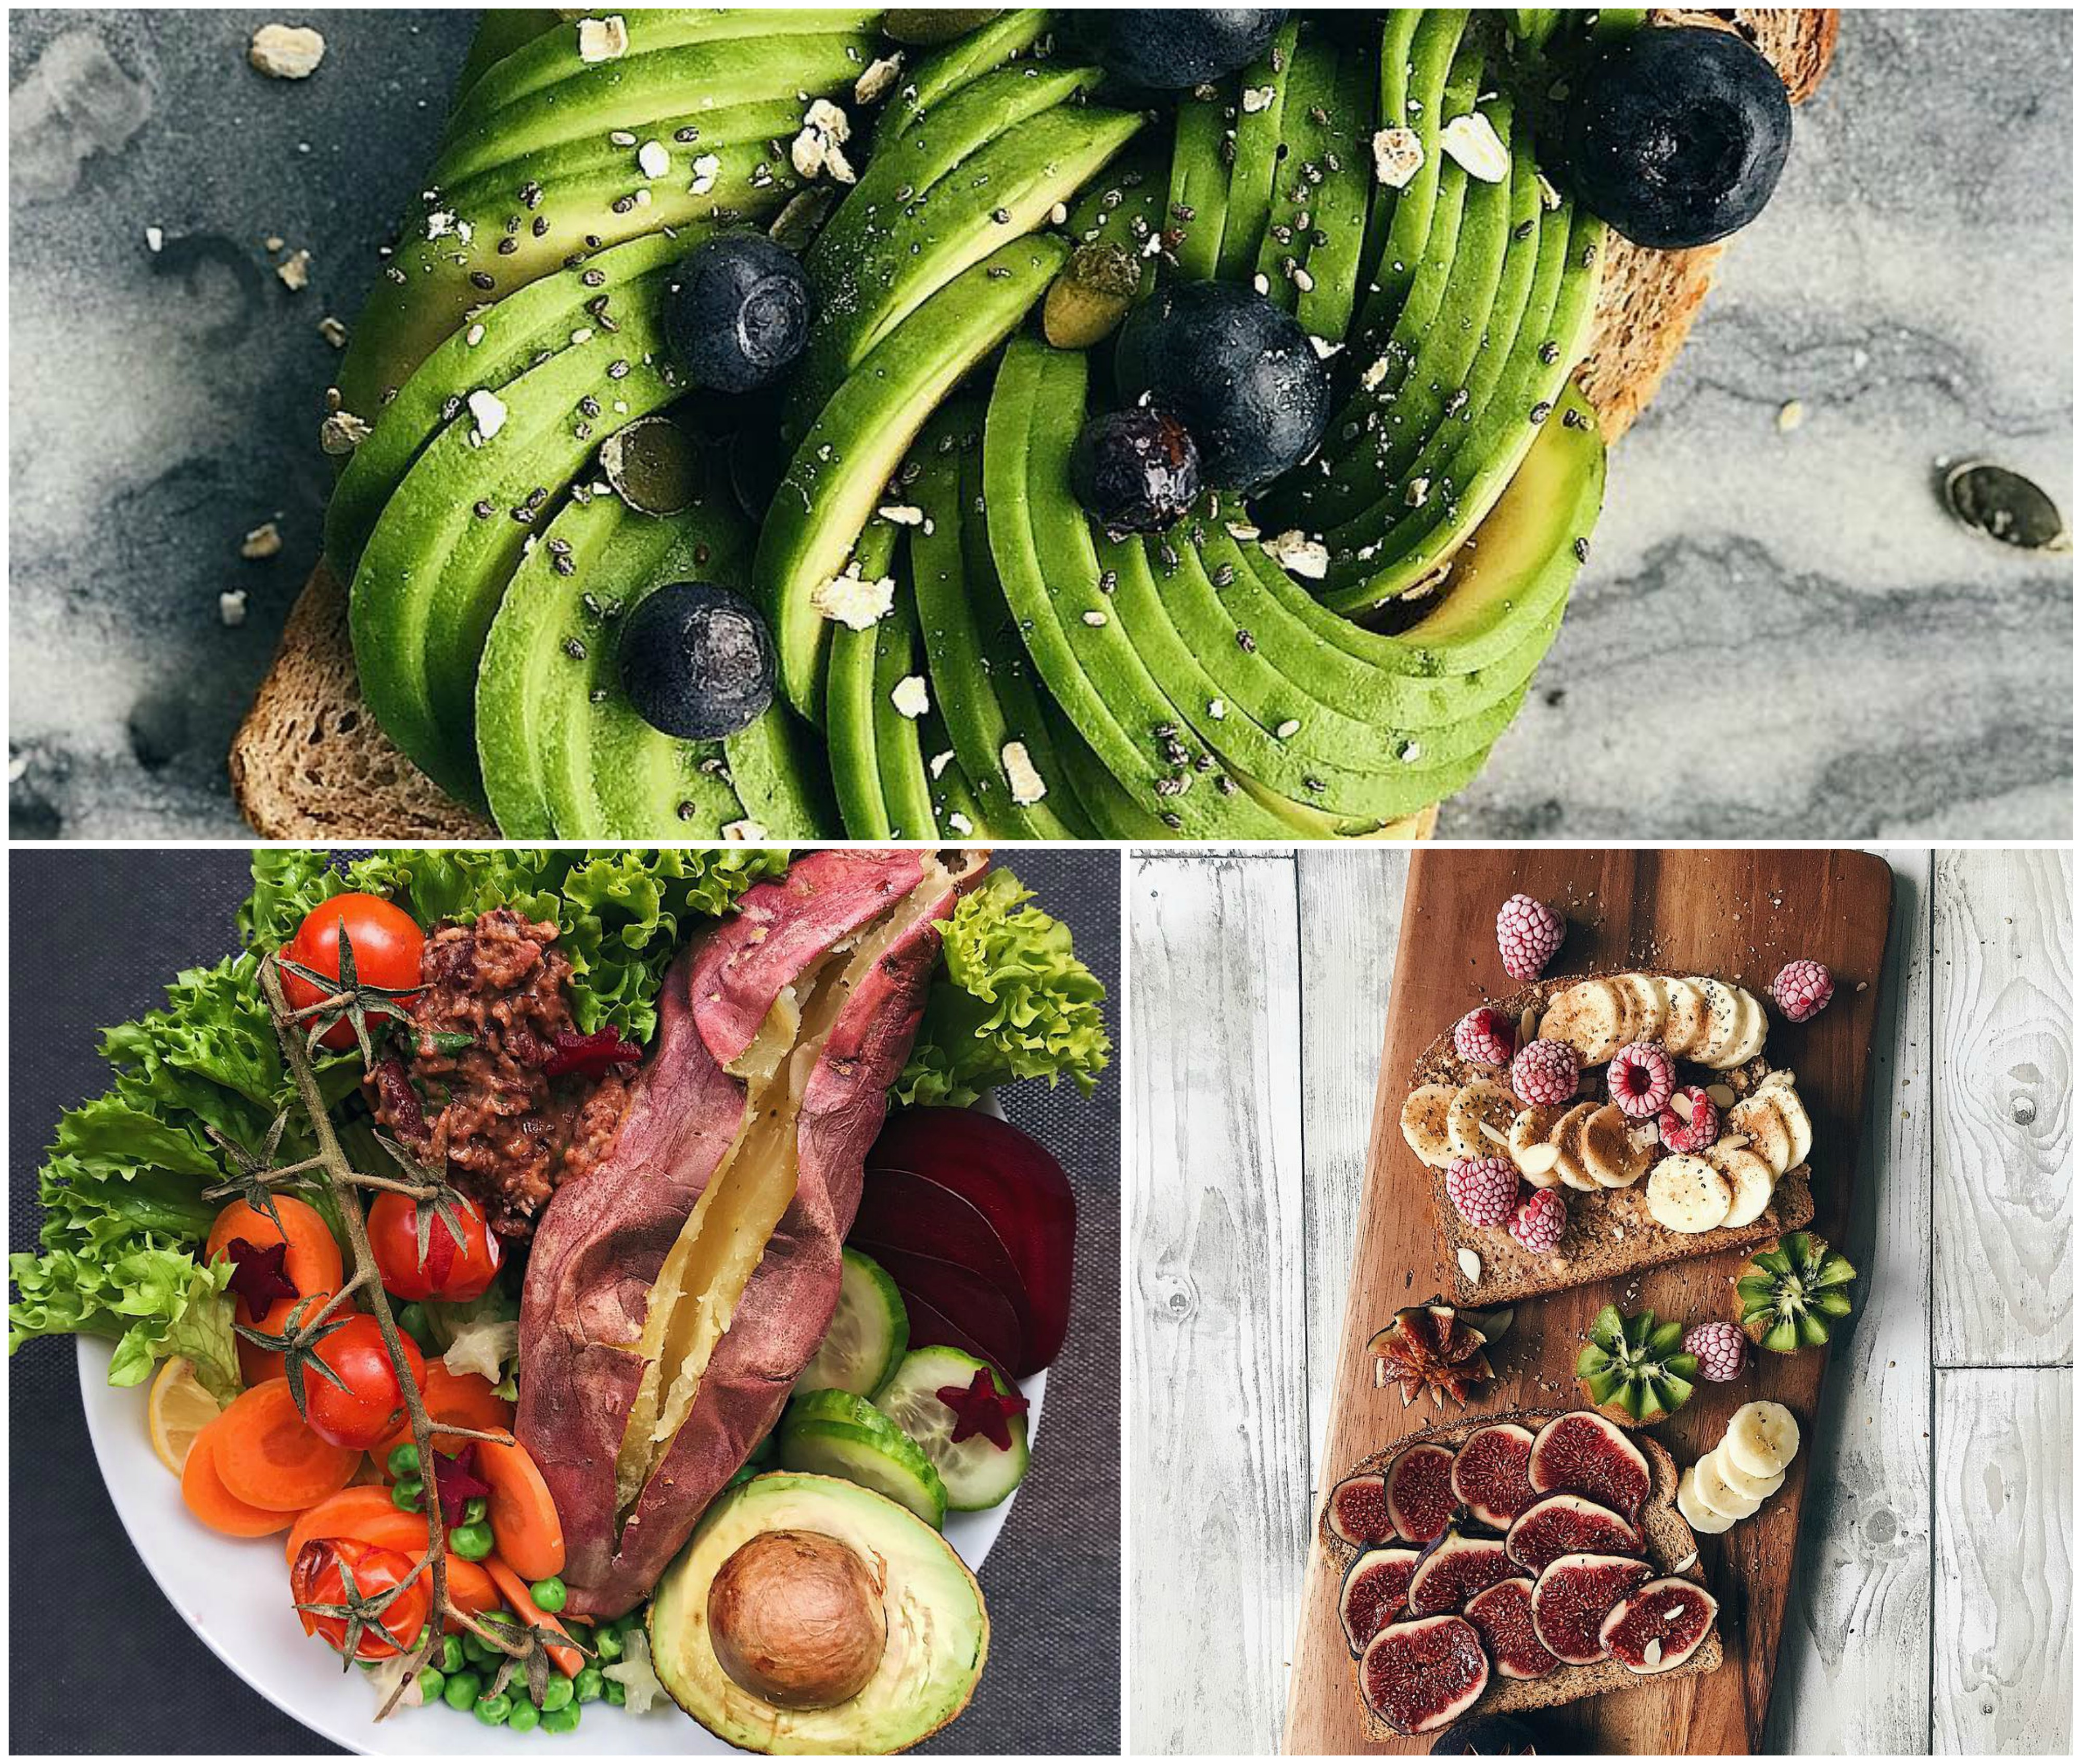 Healthy, Plant-based Meal Delights To Help You Lead A Healthy Lifestyle photo